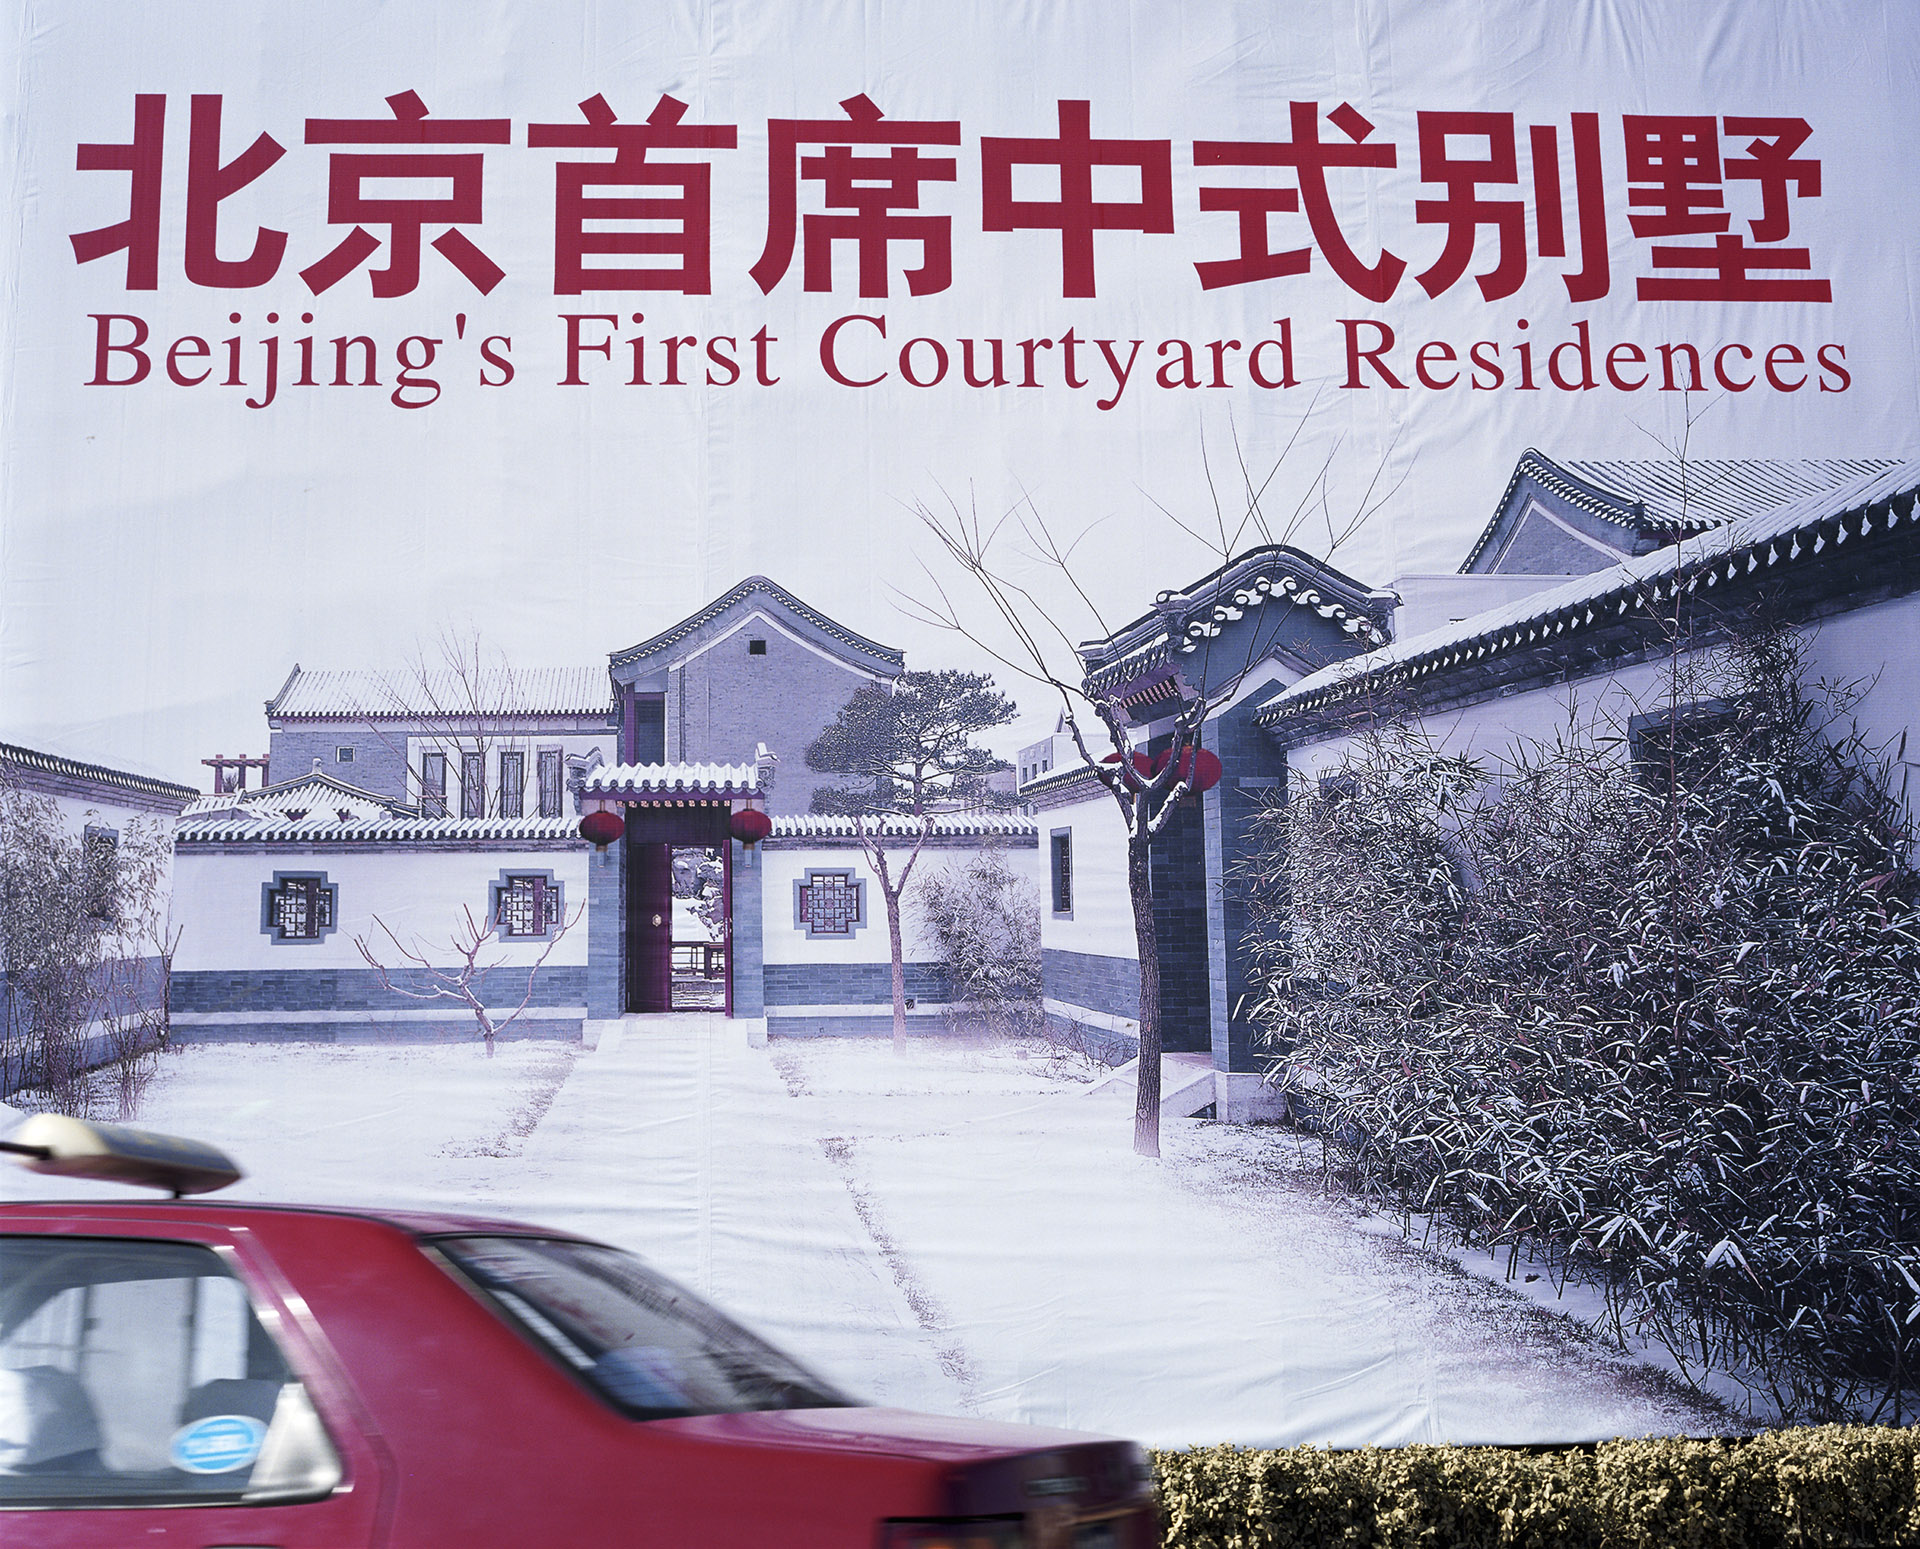 Beijing's First Courtyard Residency in a more modern setting.